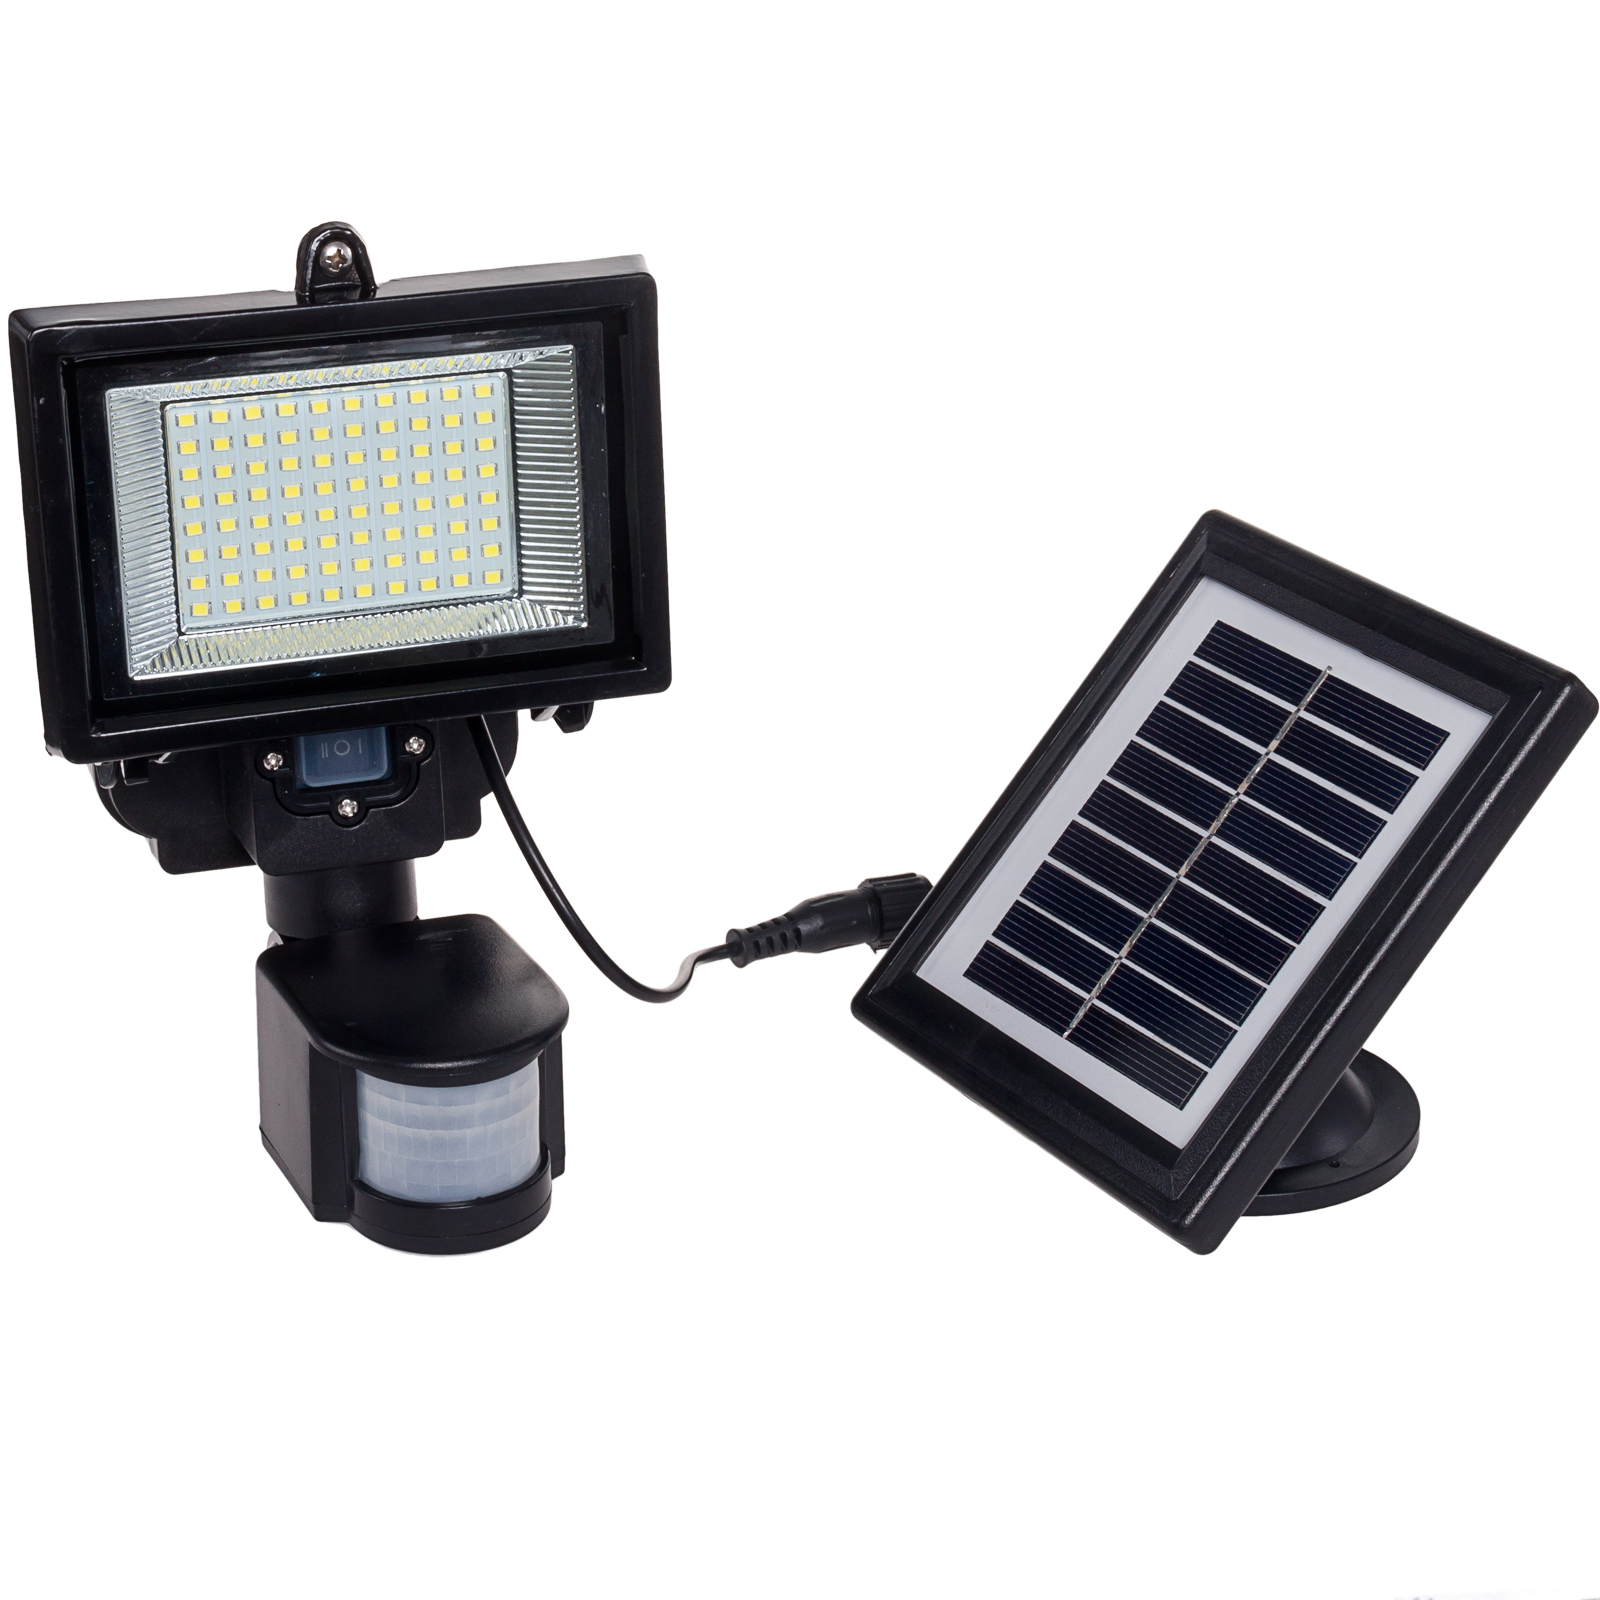 GREENLIGHTING Black 80 LED Solar Powered PIR Motion Sensor Security Flood Light